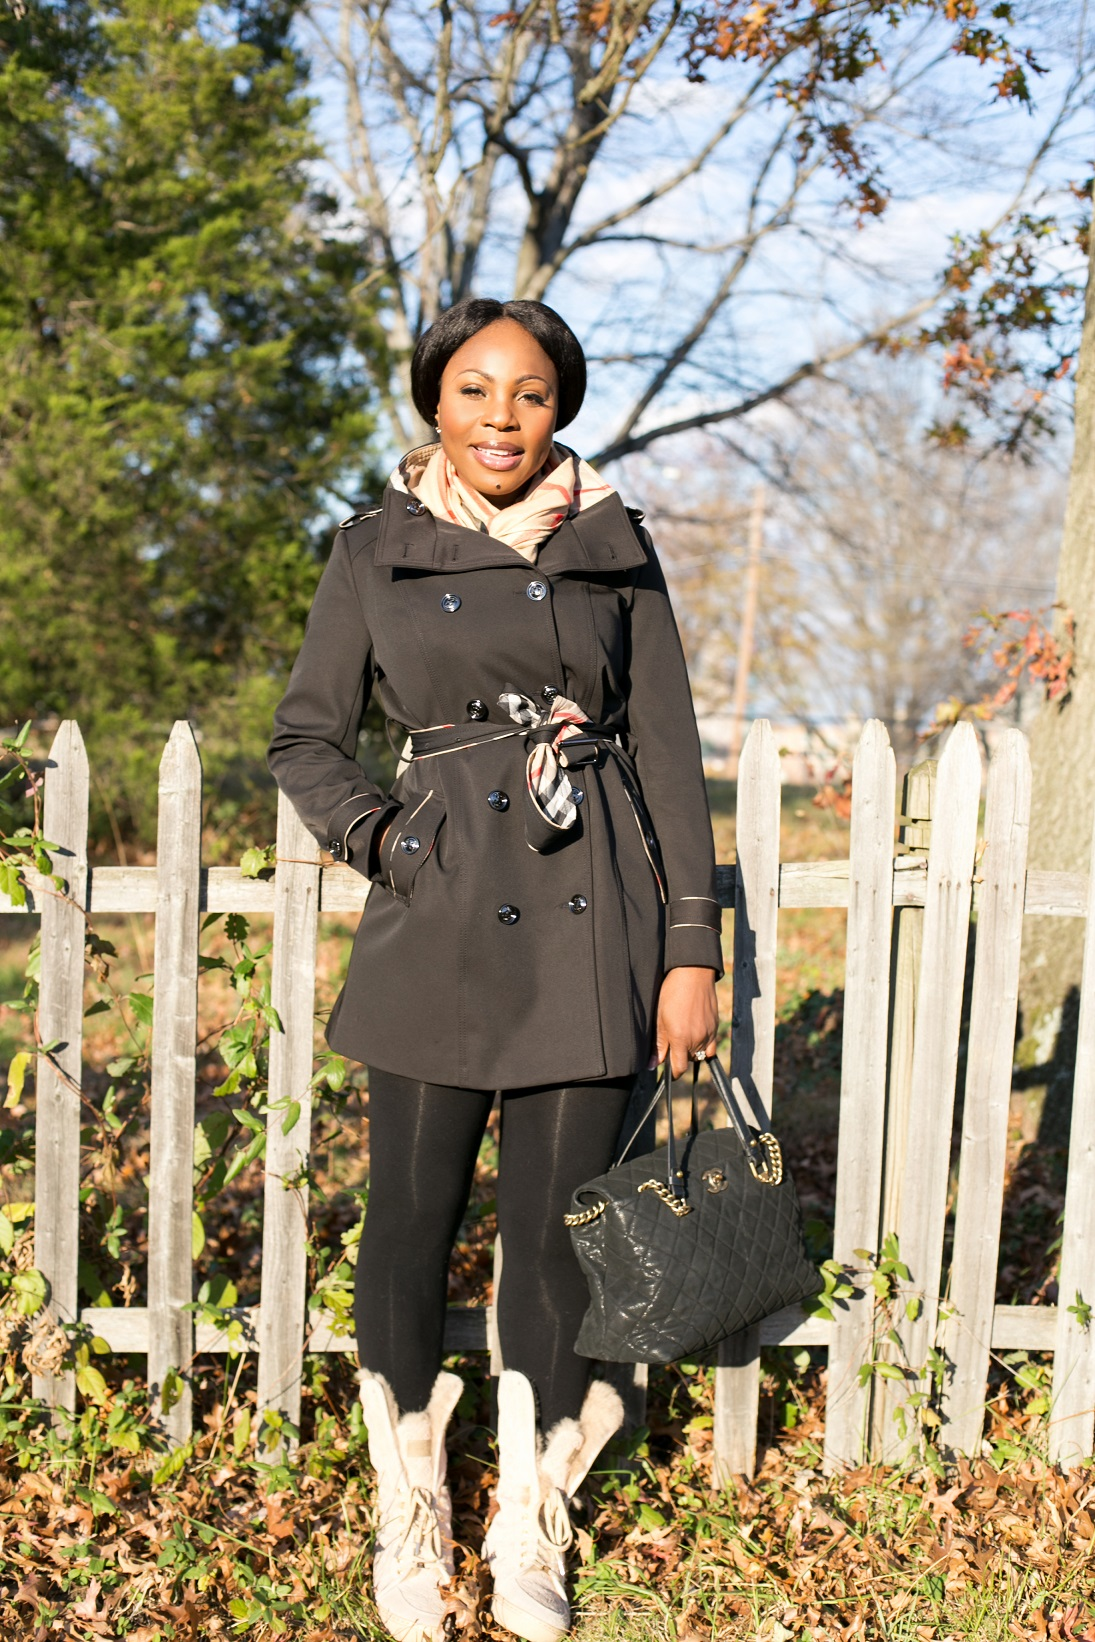 outfit of the day on a sunny fall winter day